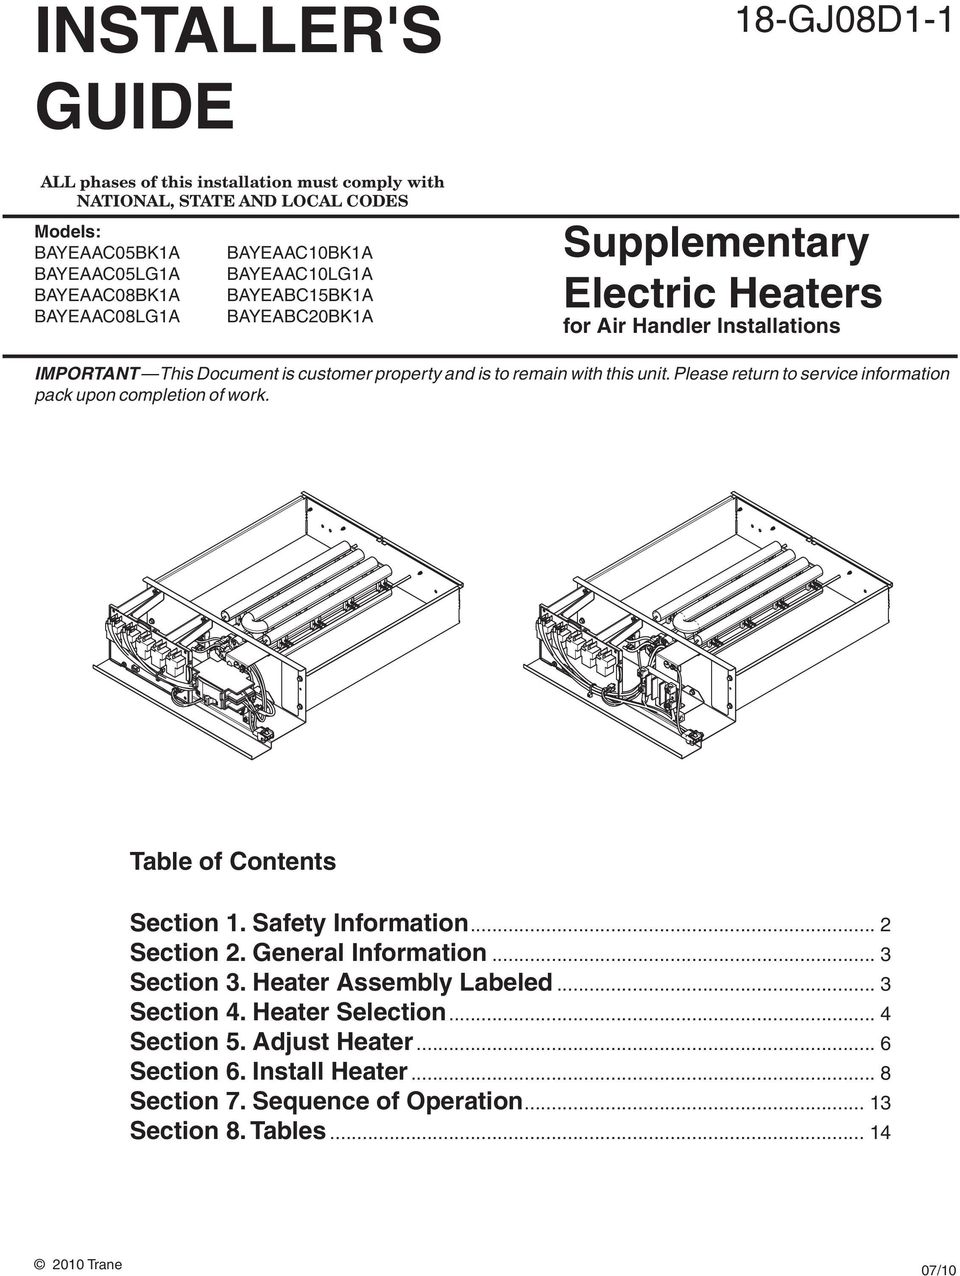 Installers Guide Supplementary Electric Heaters 18 Gj08d1 1 Table Truck Heater Wiring Diagram Besides Garage Door Opener Unit Please Return To Service Information Pack Upon Completion Of Work Contents